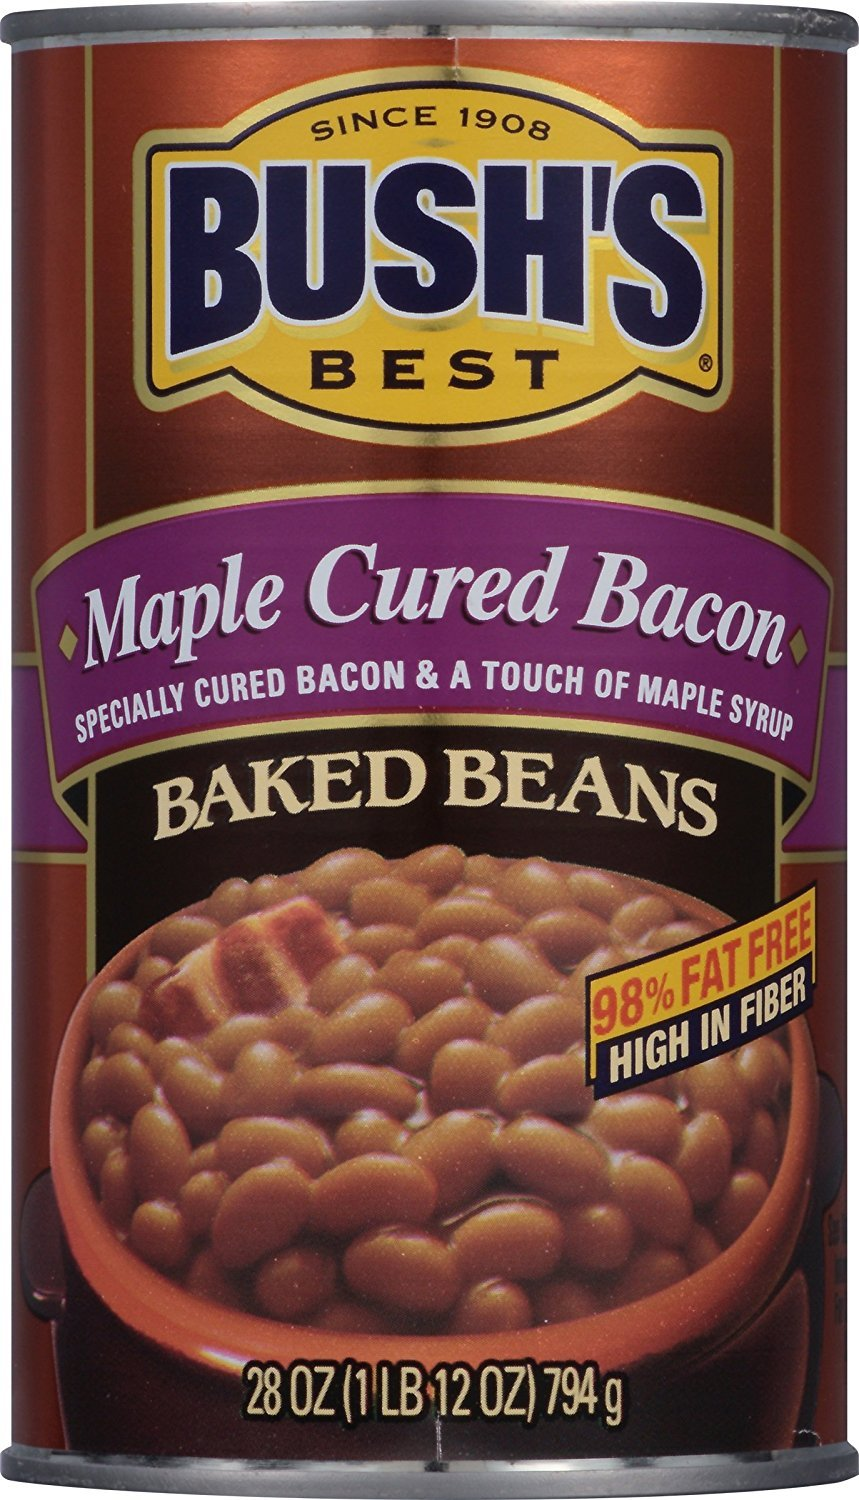 BUSH'S BEST Maple and Cured Bacon Baked Beans, 28 Ounce Can (Pack of 12), Canned Beans, Baked Beans Canned, Source of Plant Based Protein and Fiber, Low Fat, Gluten Free